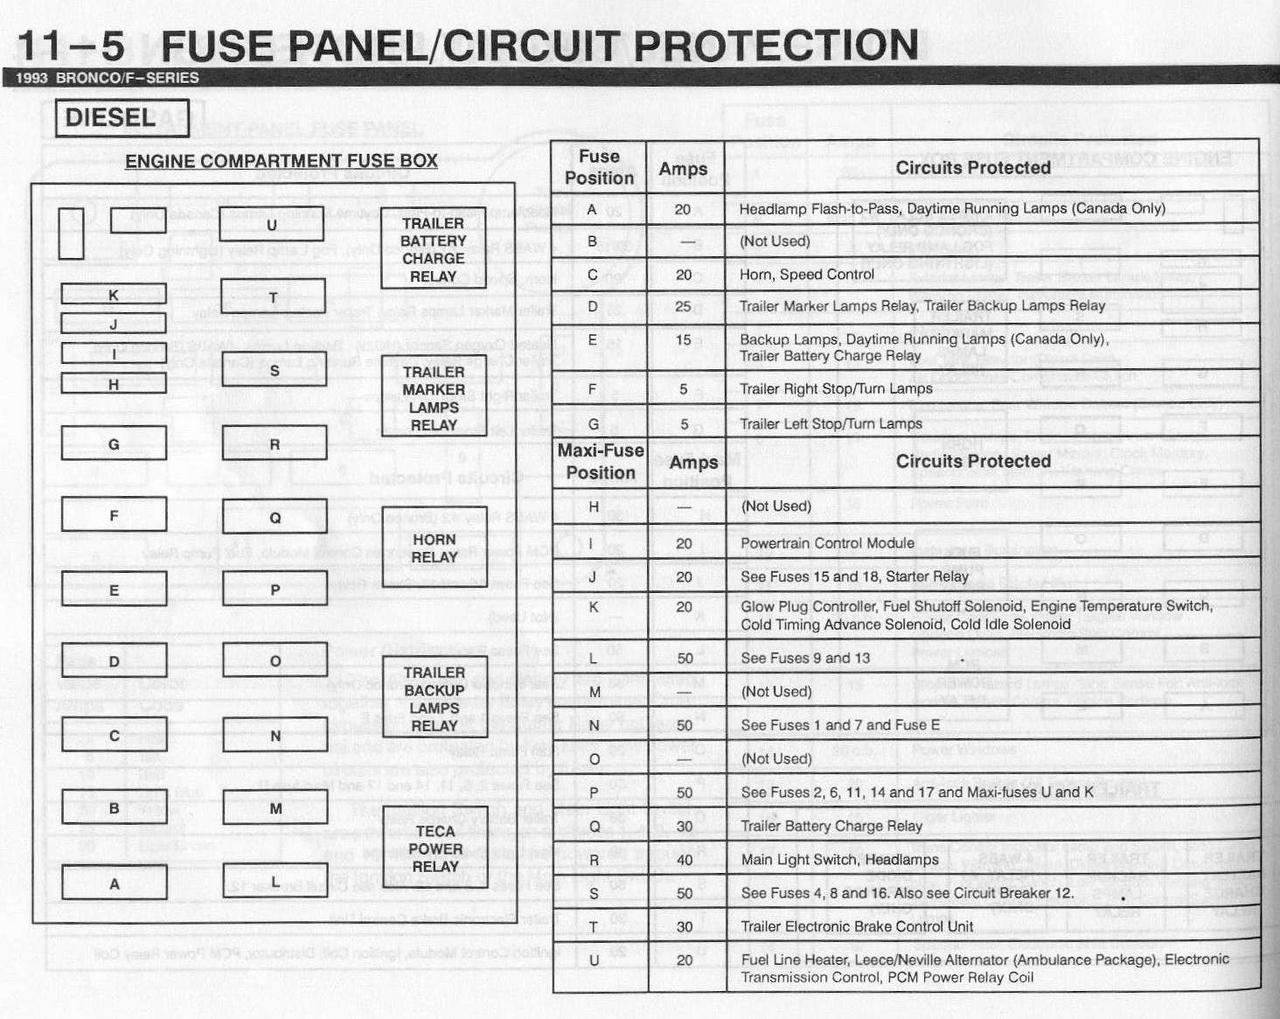 1993 Ford F350 Fuse Box Diagram Wiring Diagrams Schematic 2001 Panel 93 Data 2004 Excursion